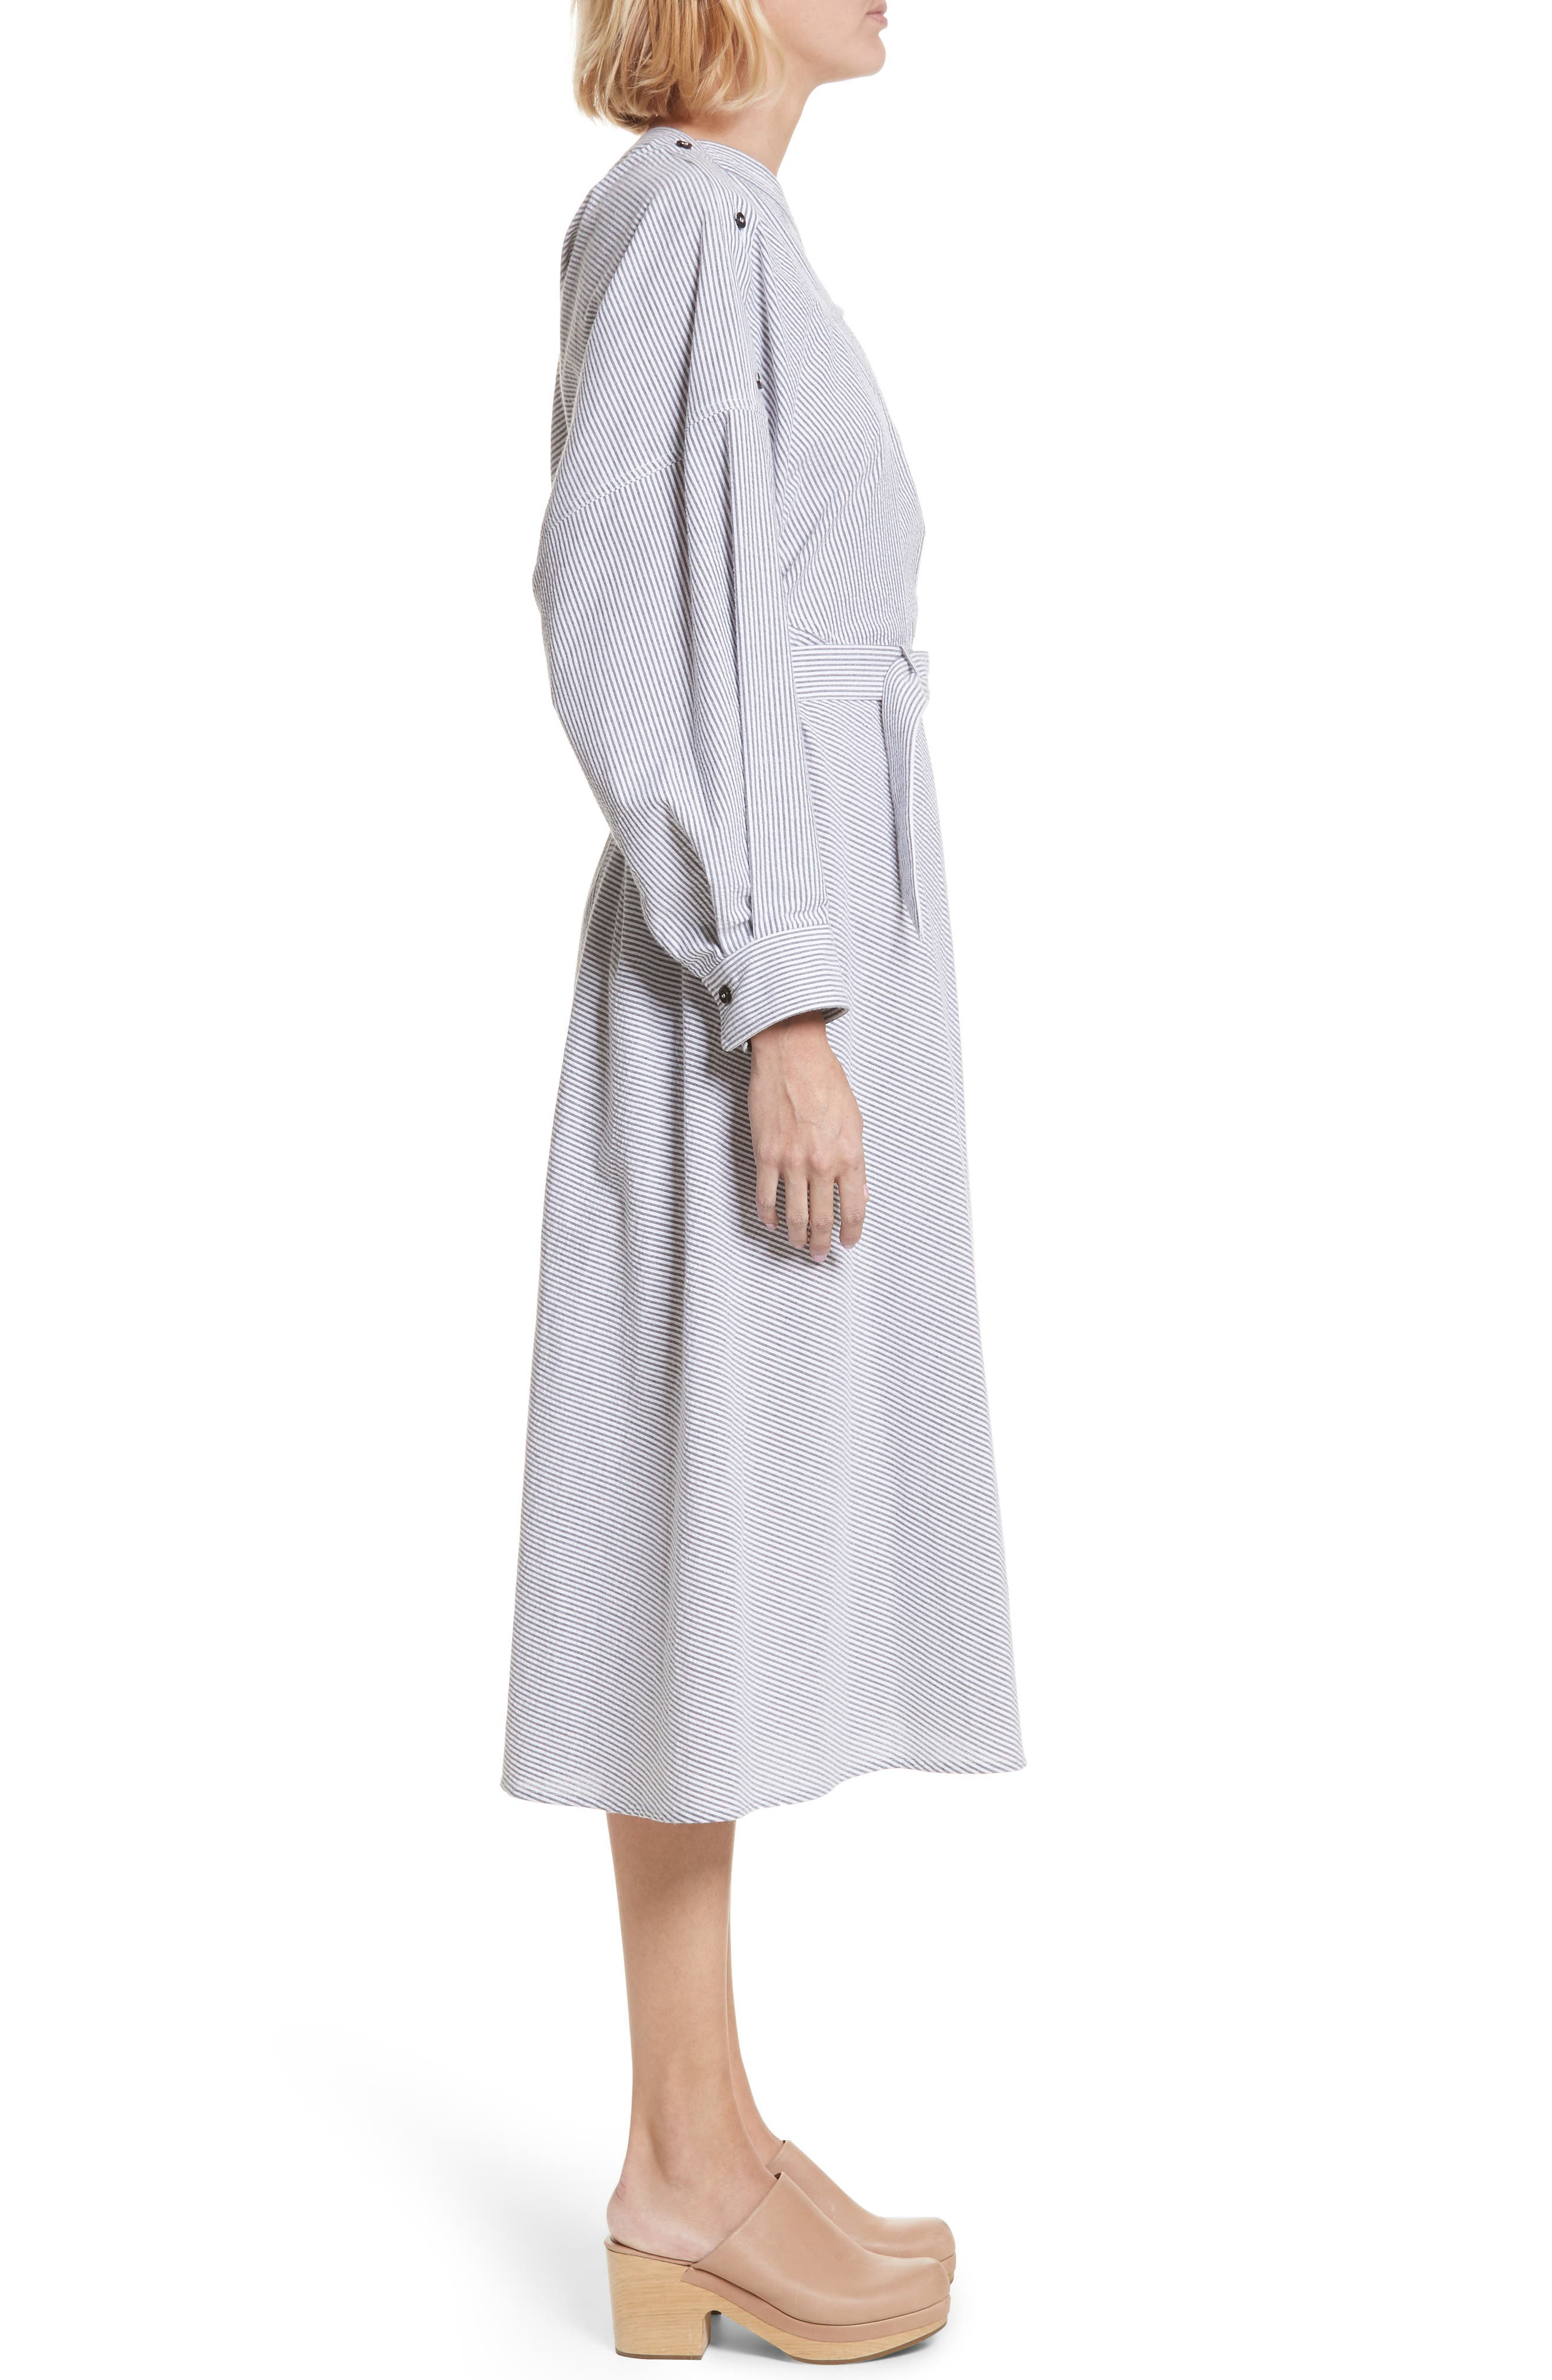 Welcome Asymmetrical Dress,                             Alternate thumbnail 3, color,                             Black/ White